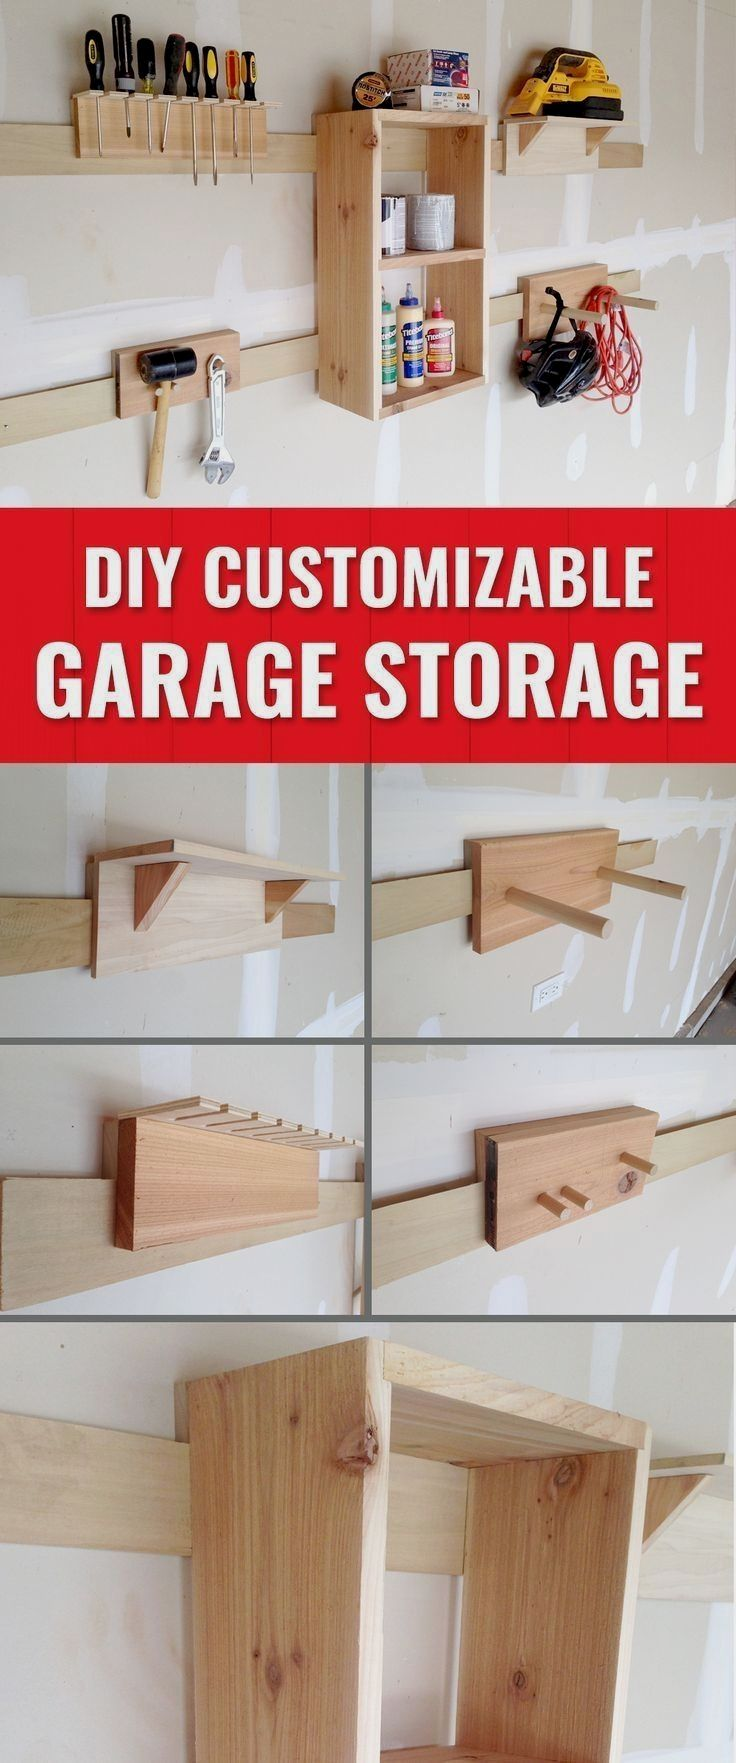 Garage Storage Racks Brisbane And Pics Of Garage Storage Racks Bunnings And Other Solutions Garage Garages Diy Storage Woodworking Projects Diy Garage Decor